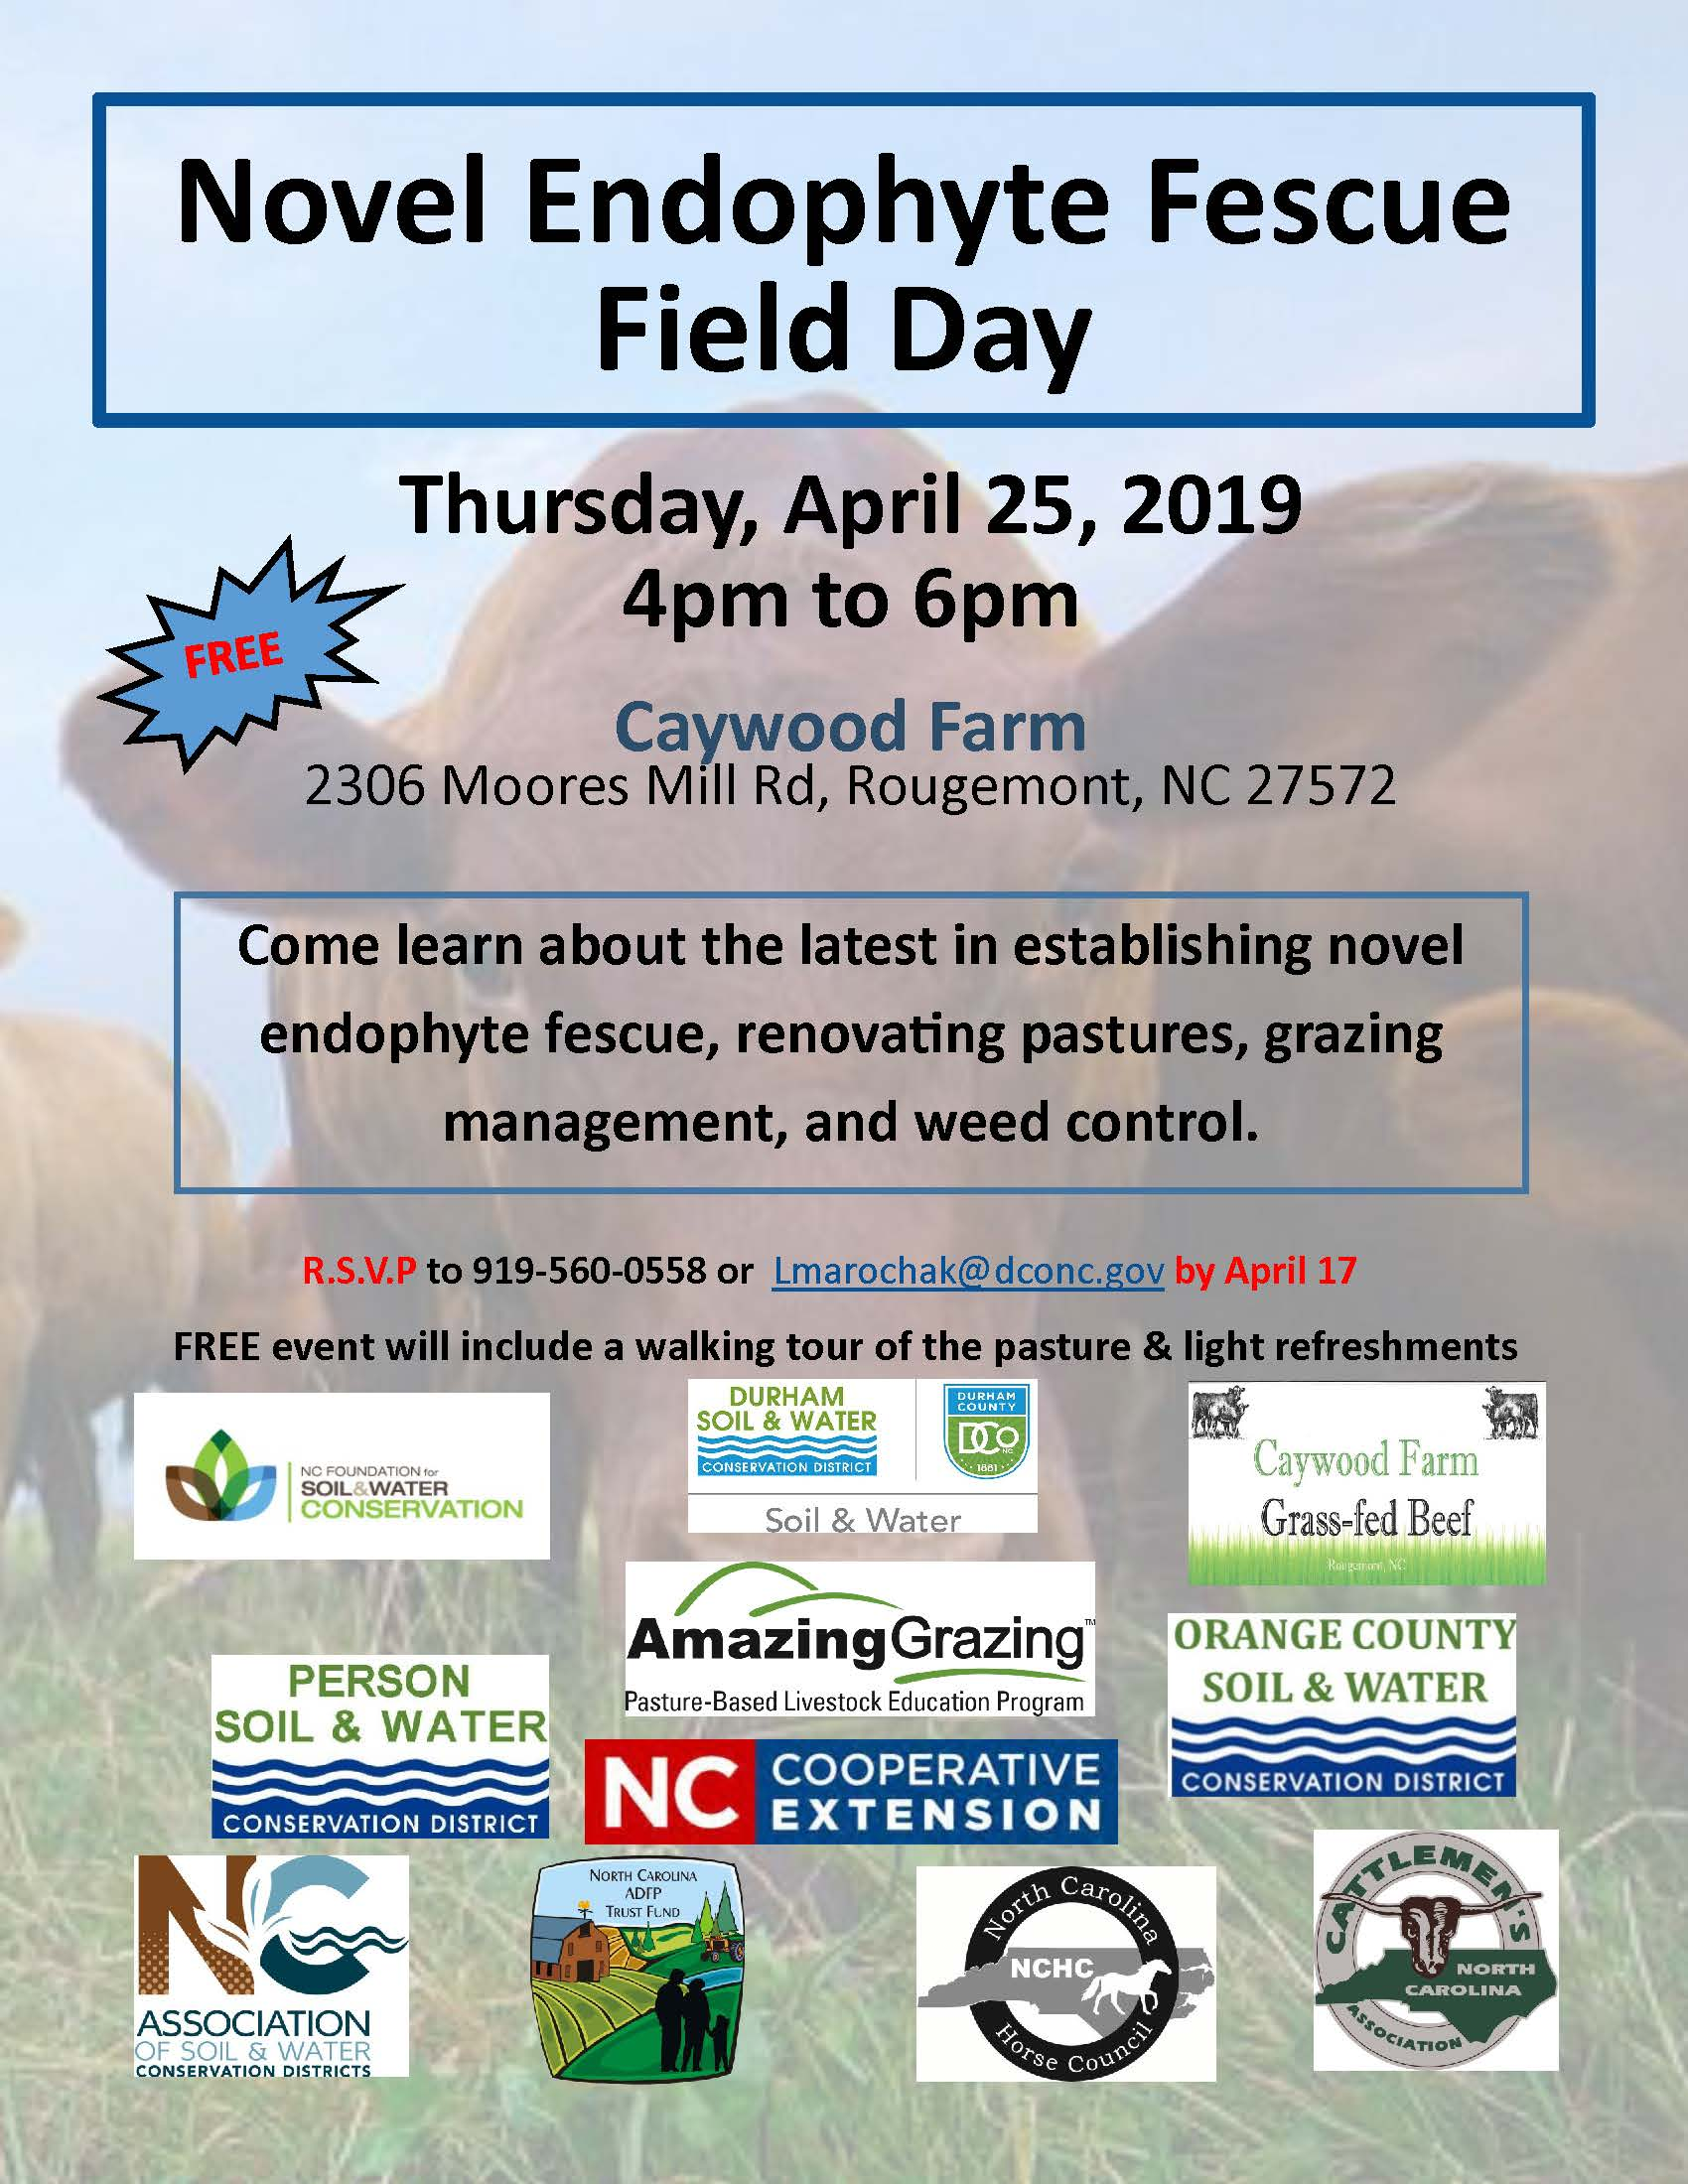 Field Day flyer image